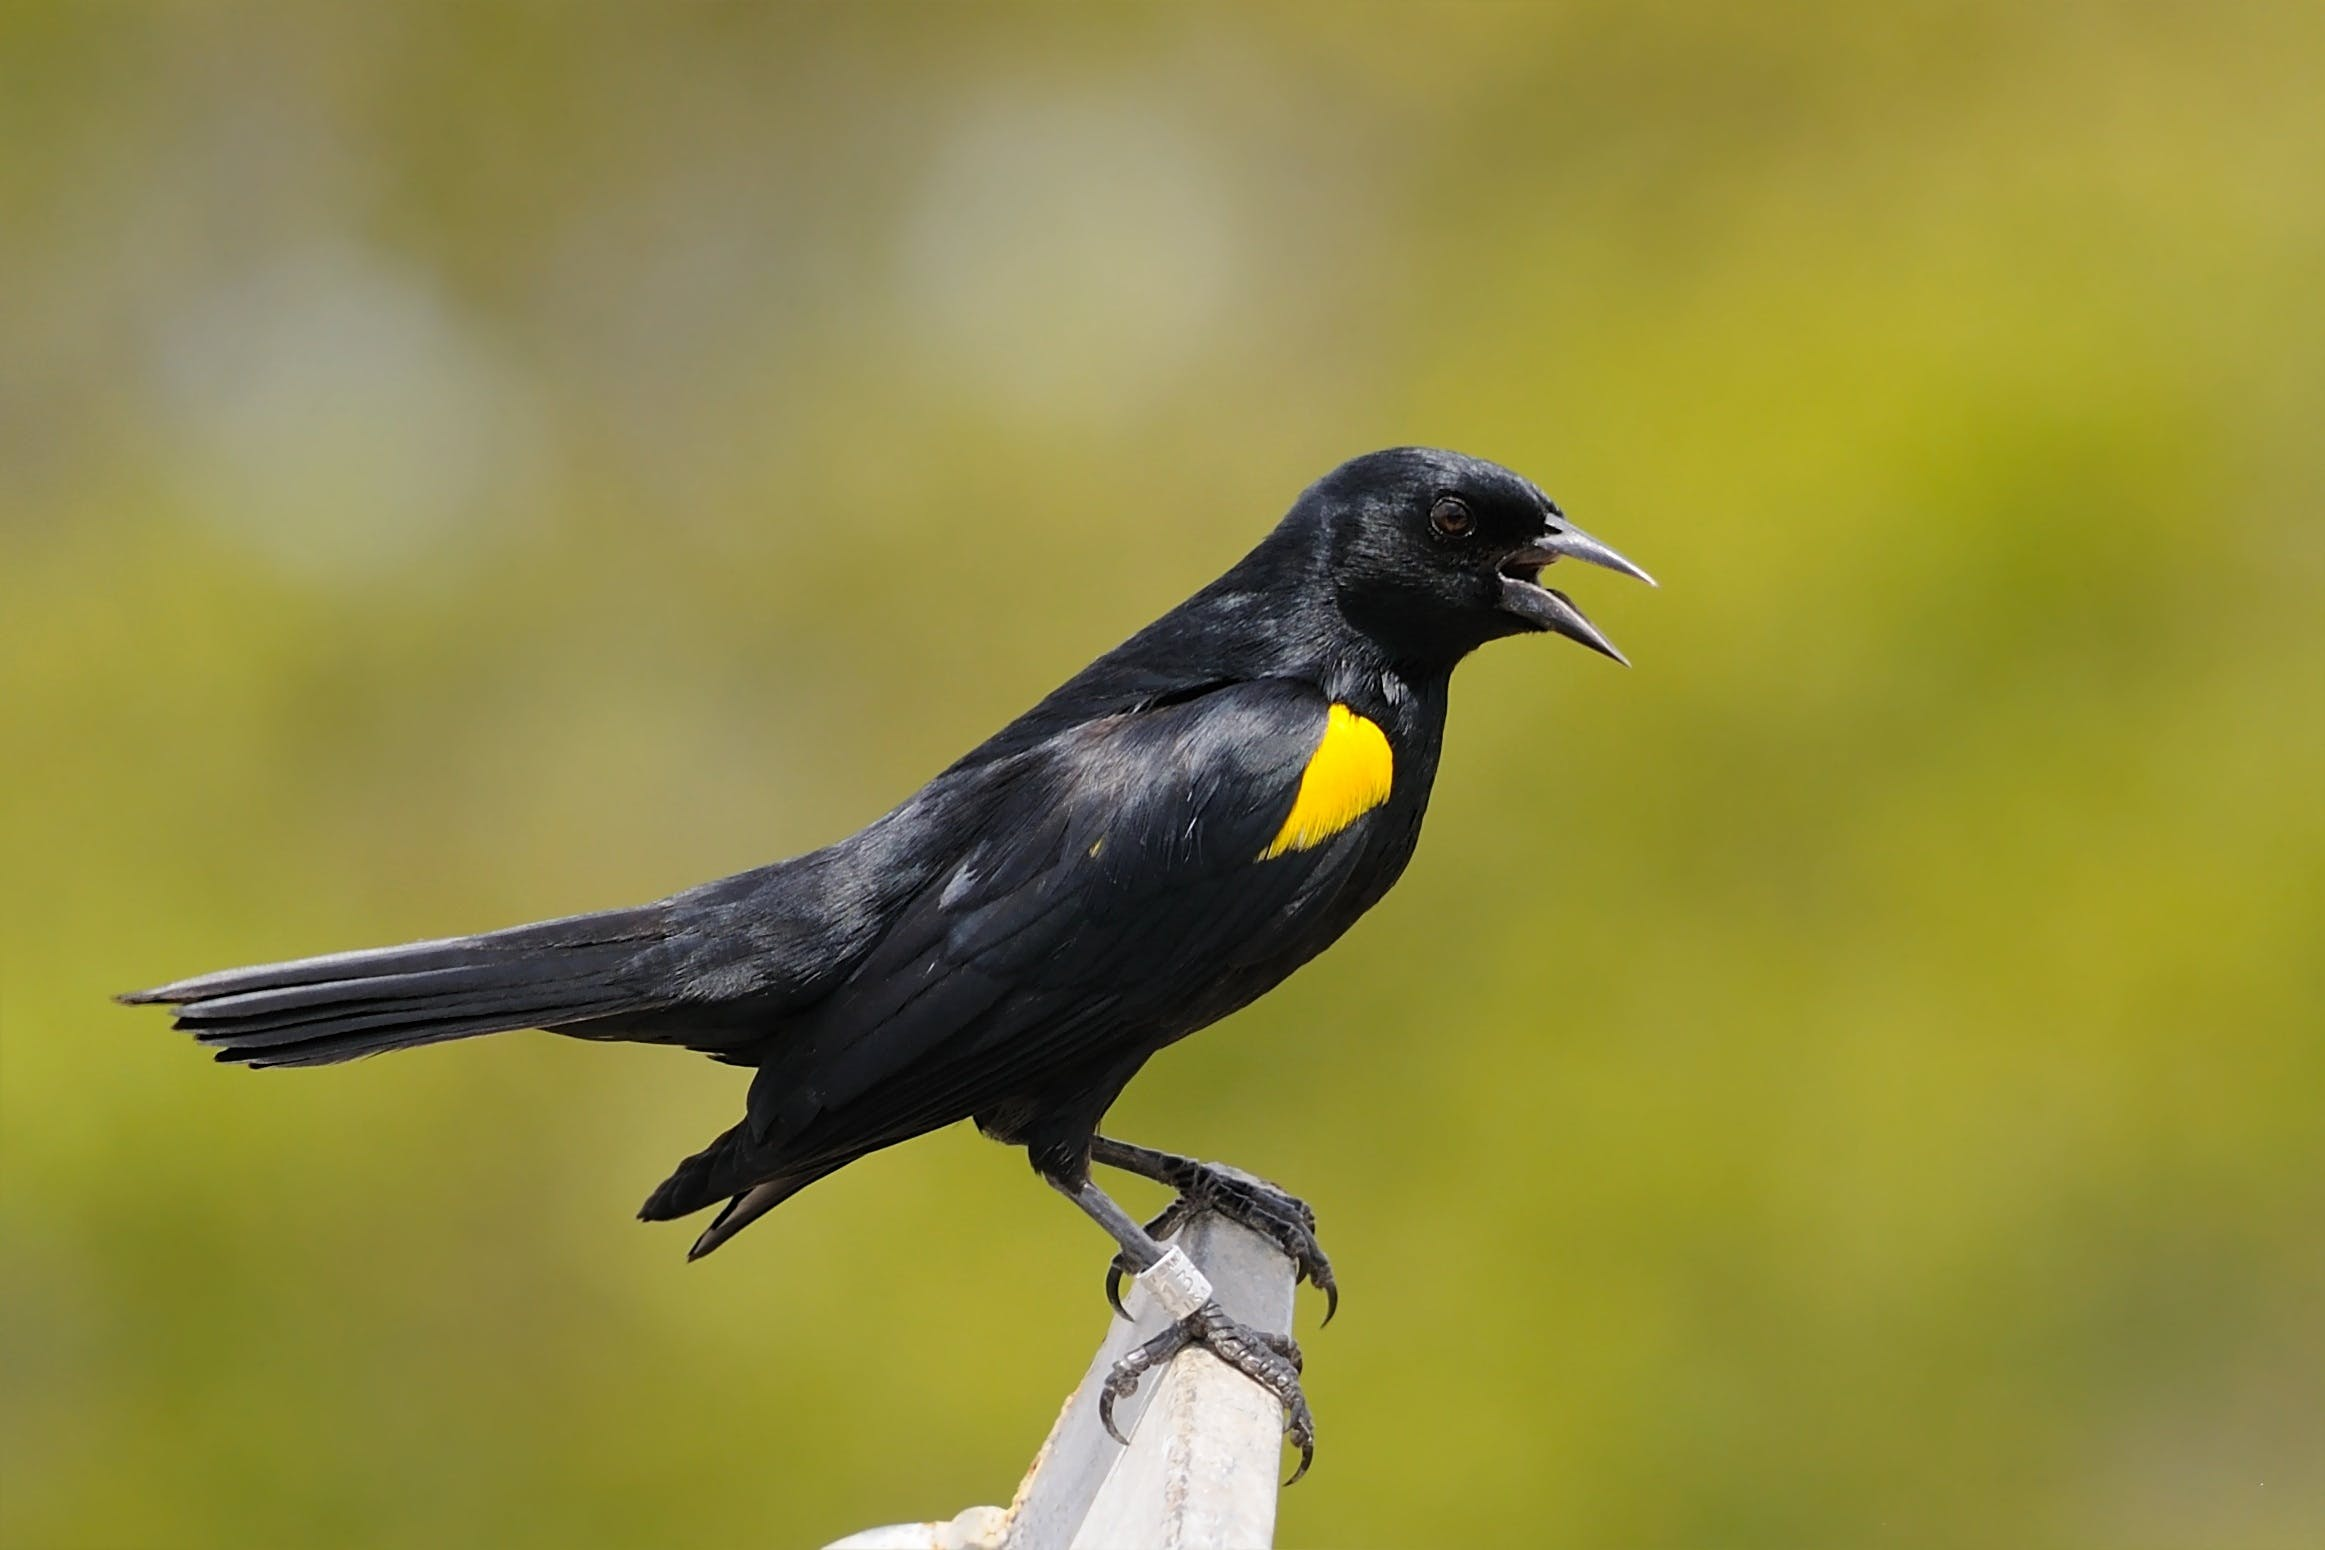 Black and Yellow Crow